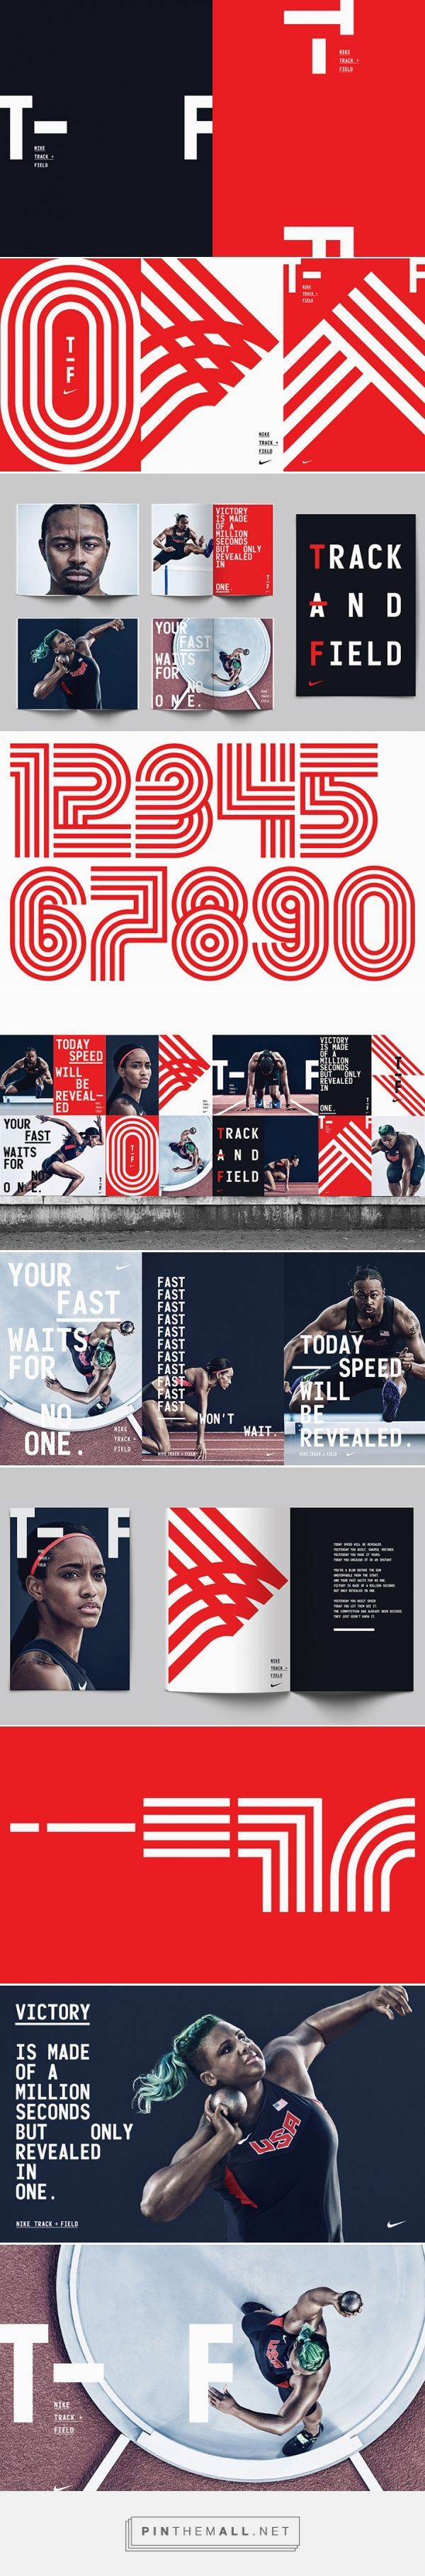 It's Nice That | Build and the Nike brand team creates bold branding for Nike's Track and Field line... - a grouped images picture - Pin Them All